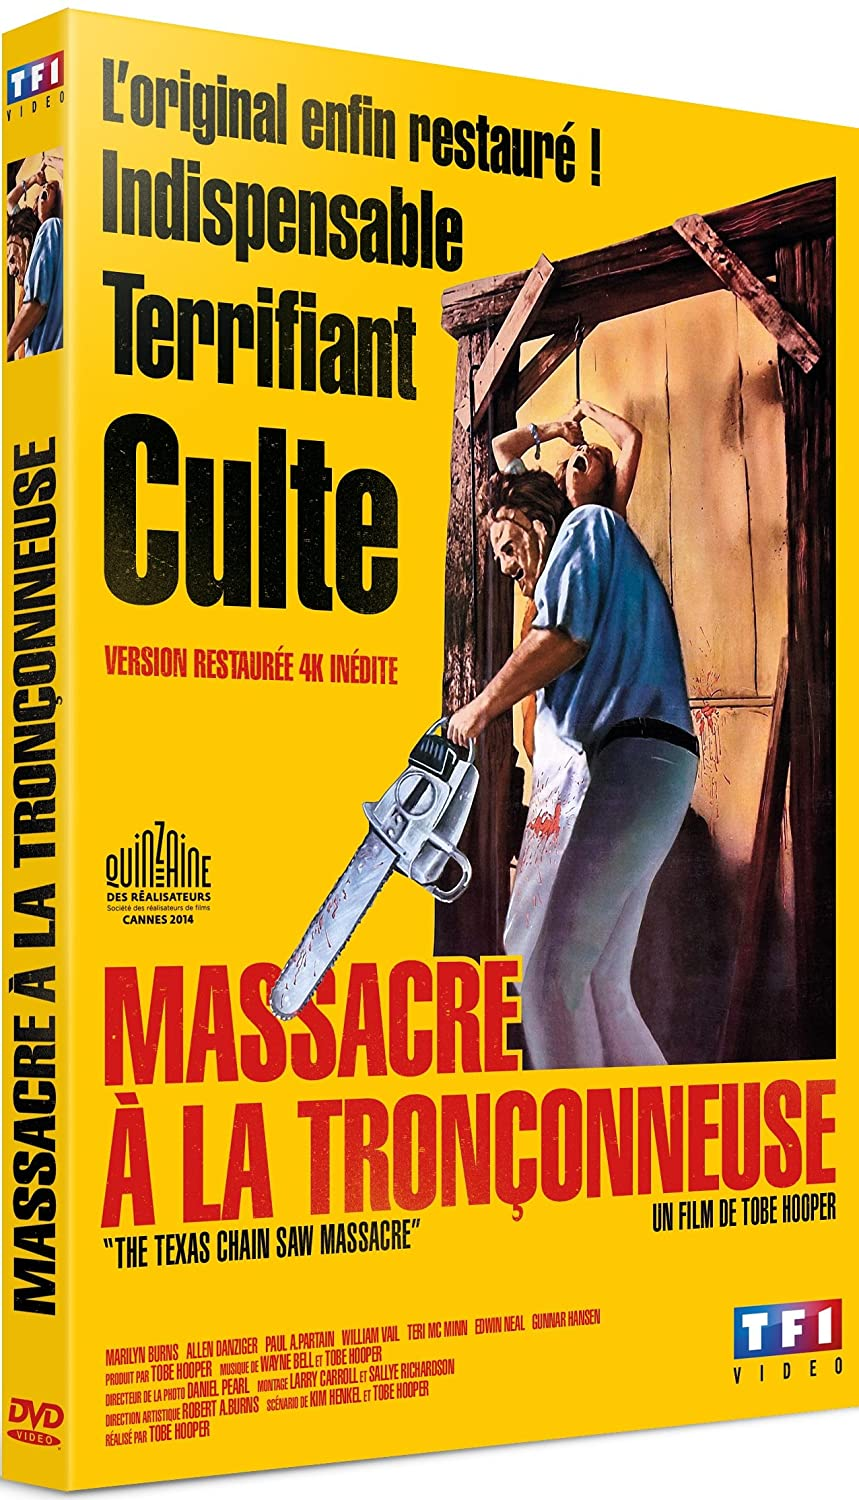 Massacre à la tronçonneuse : version restaurée, 1974